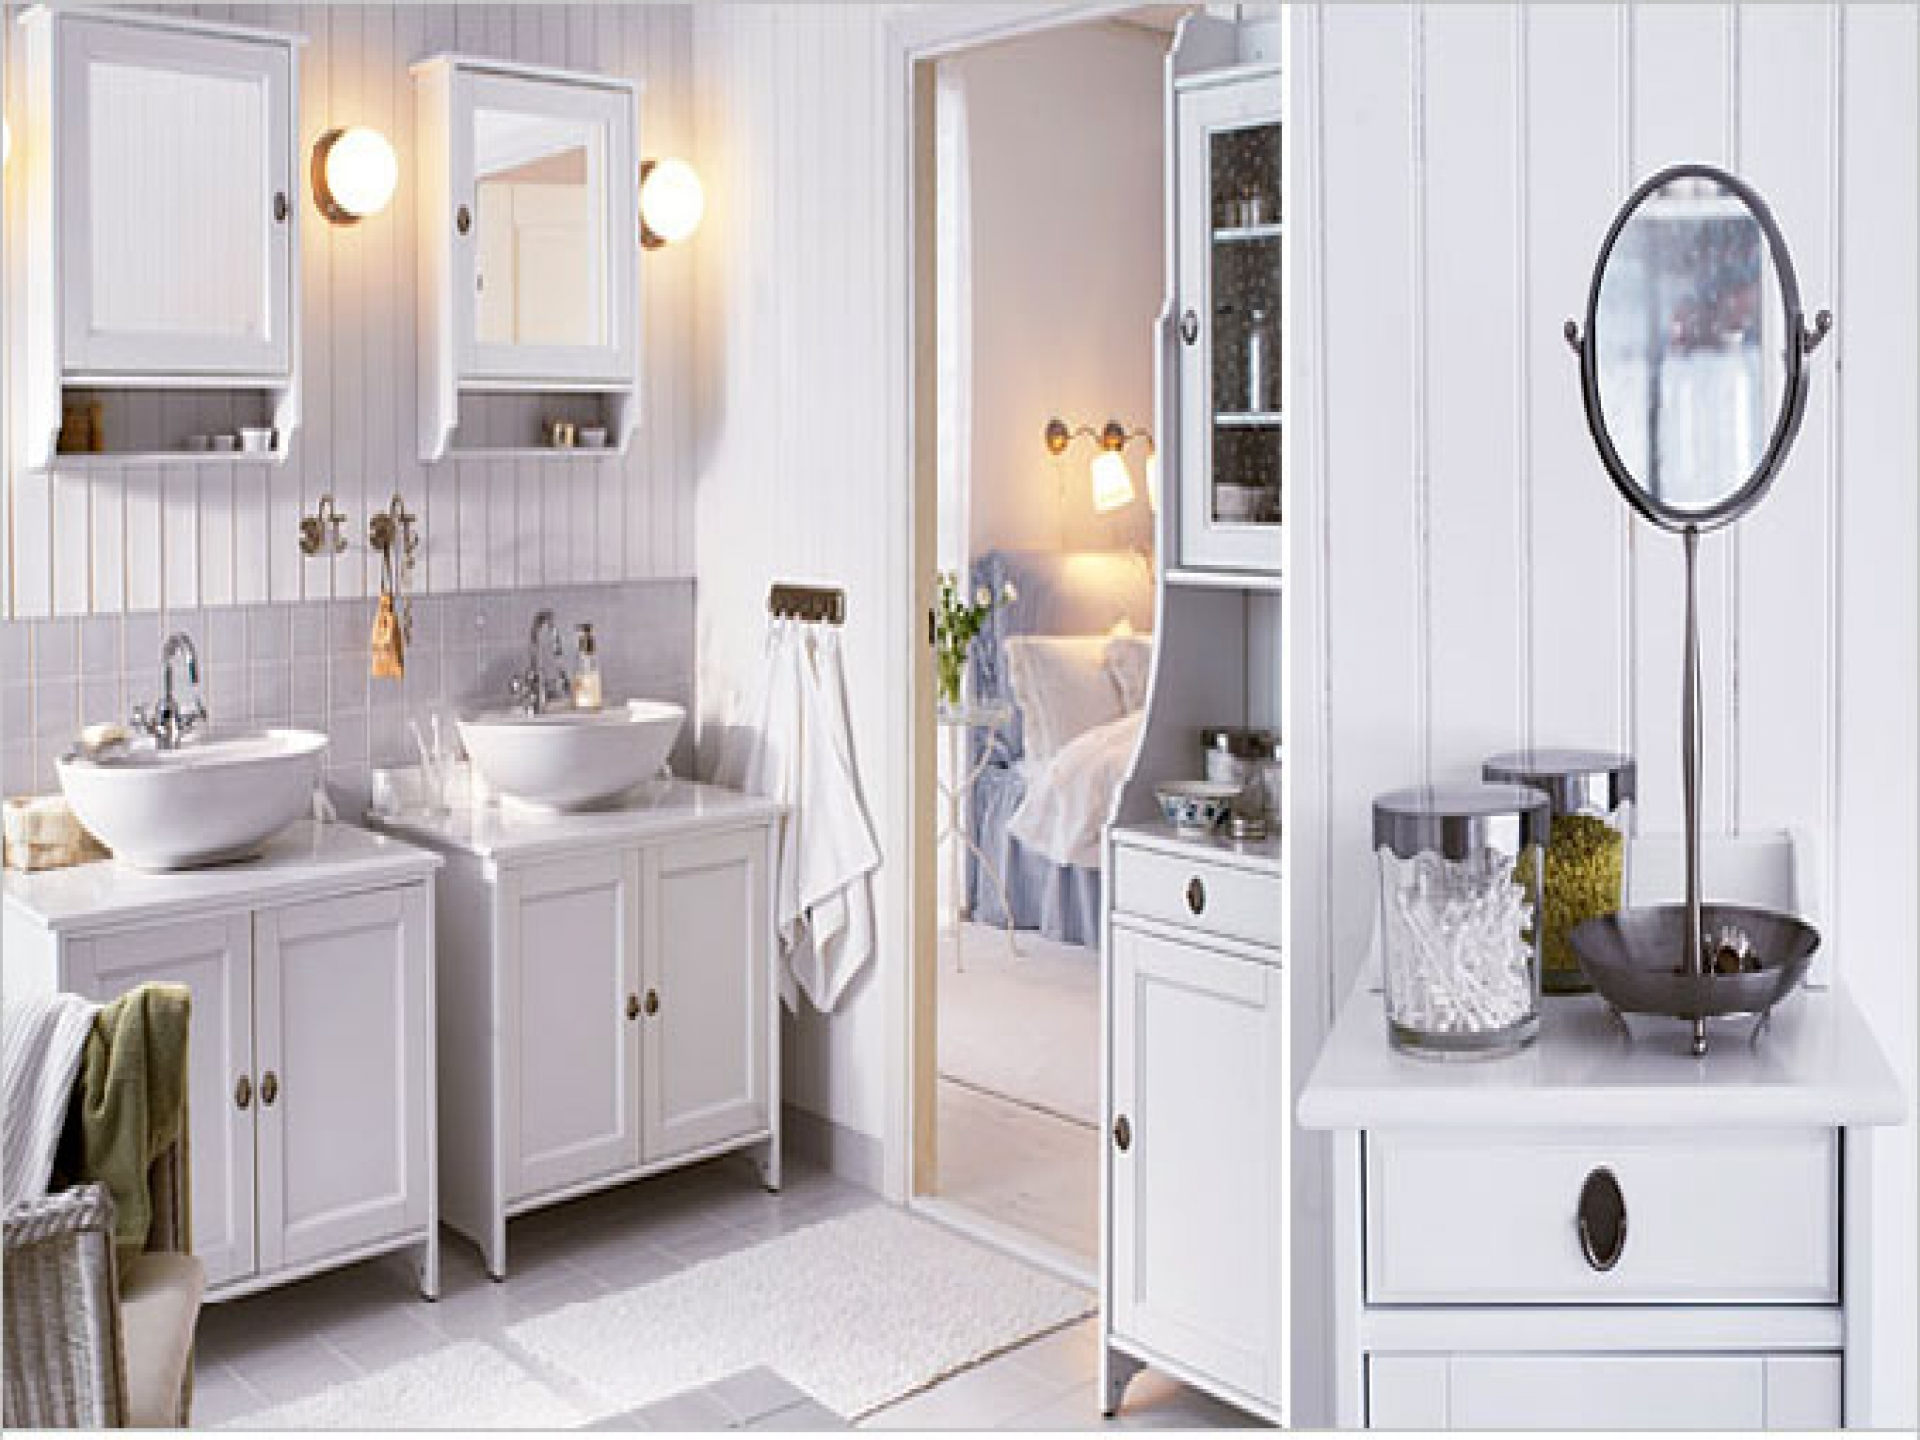 Ikea Bath Cabinet Invades Every Bathroom with Dignity | HomesFeed